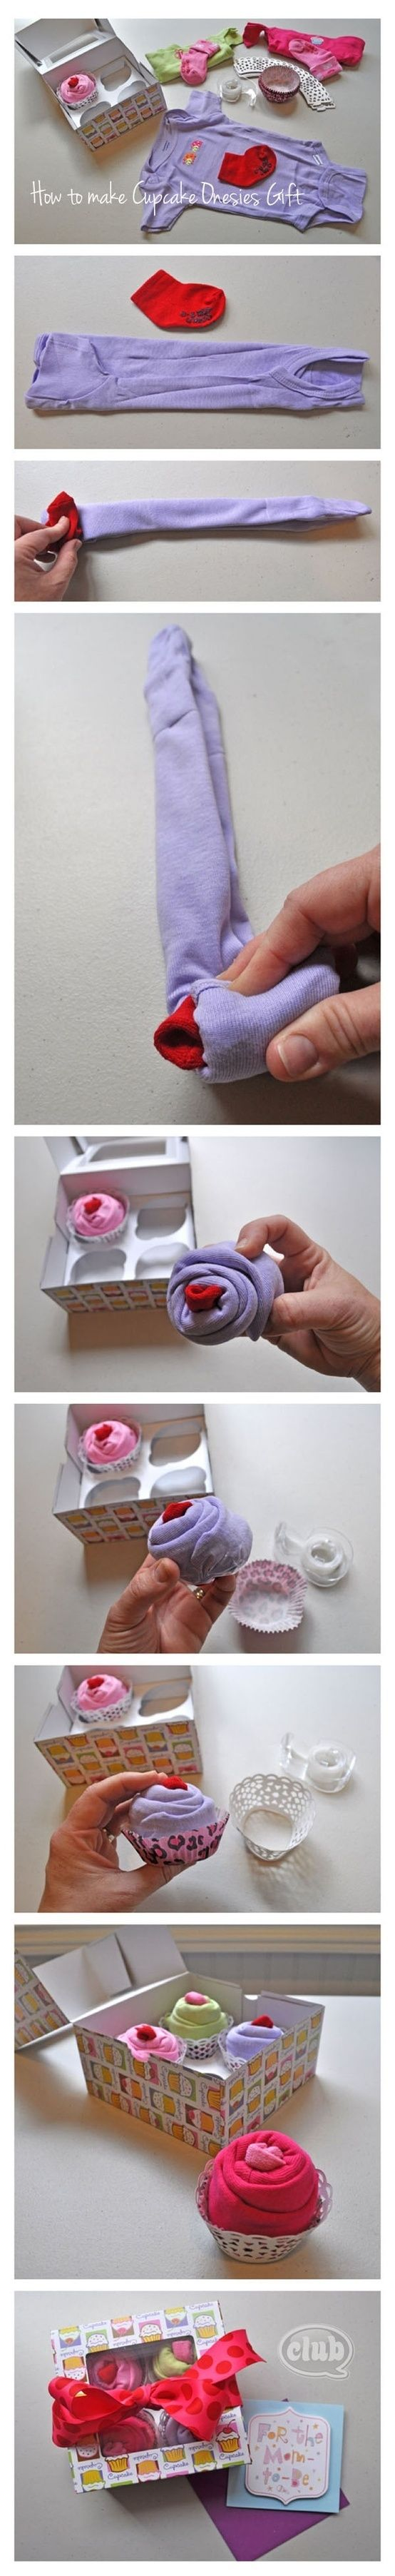 How to make onesie cupcakes for baby shower gift - I am seriously going to do this for the next baby shower I go to.....